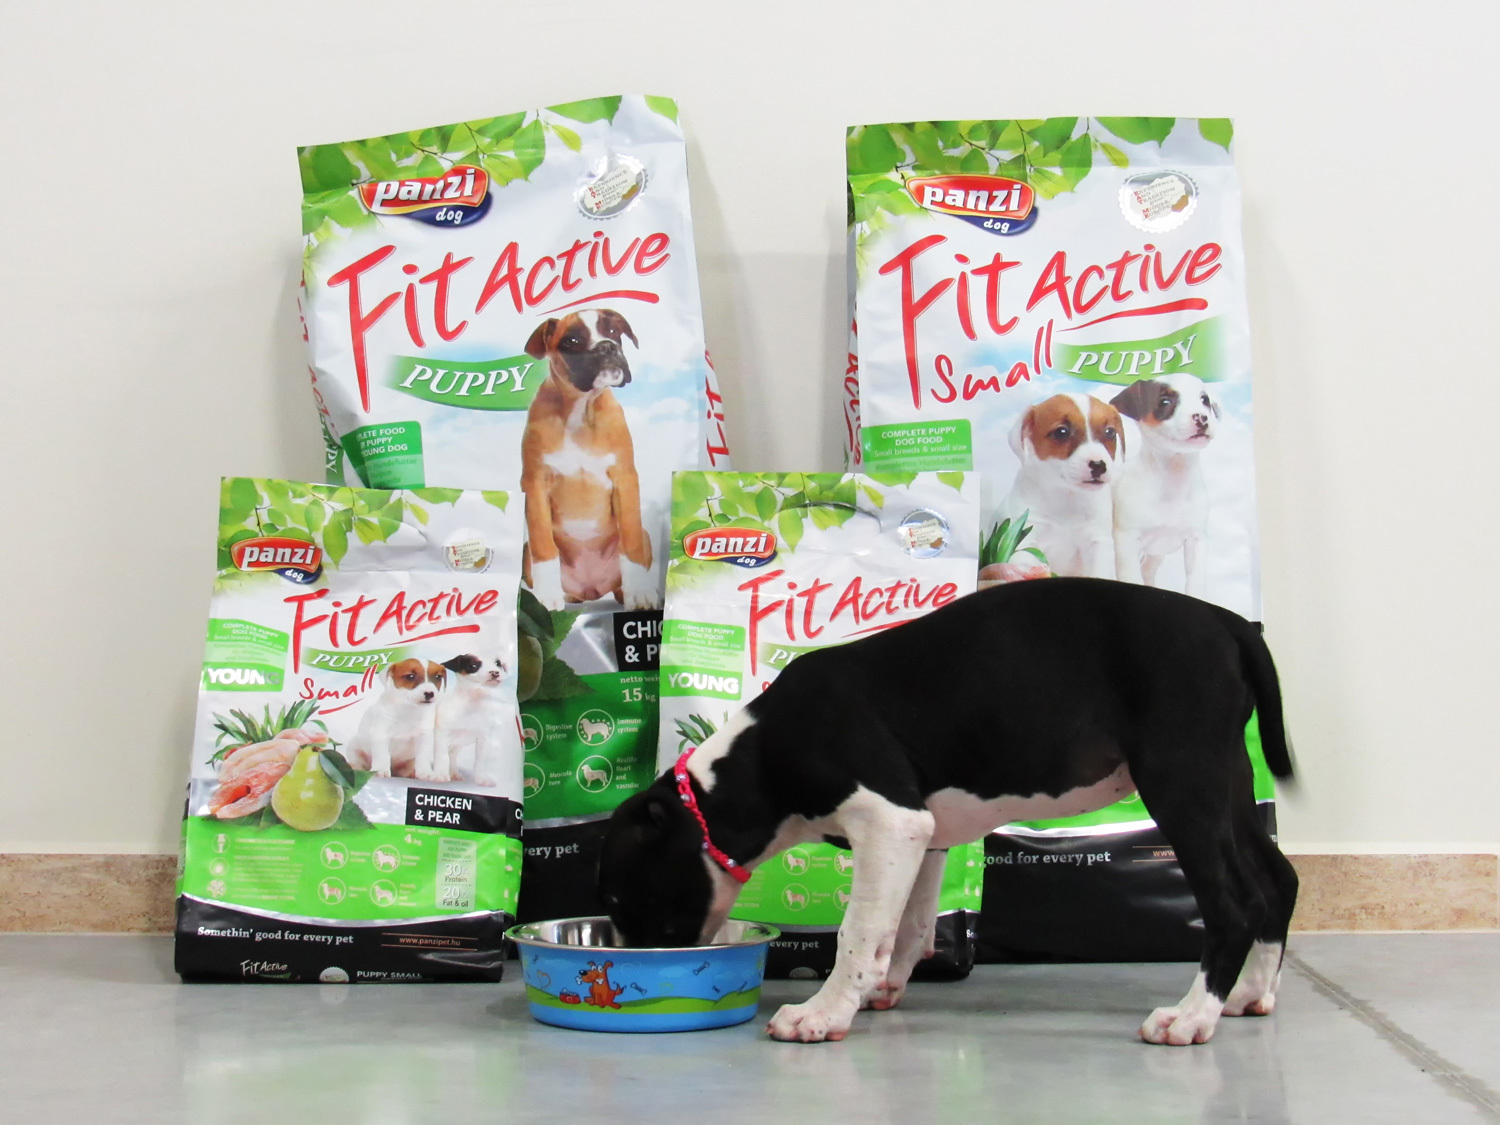 FitActive Puppy Small Chicken & Pears | FitActive Puppy Chicken & Pears